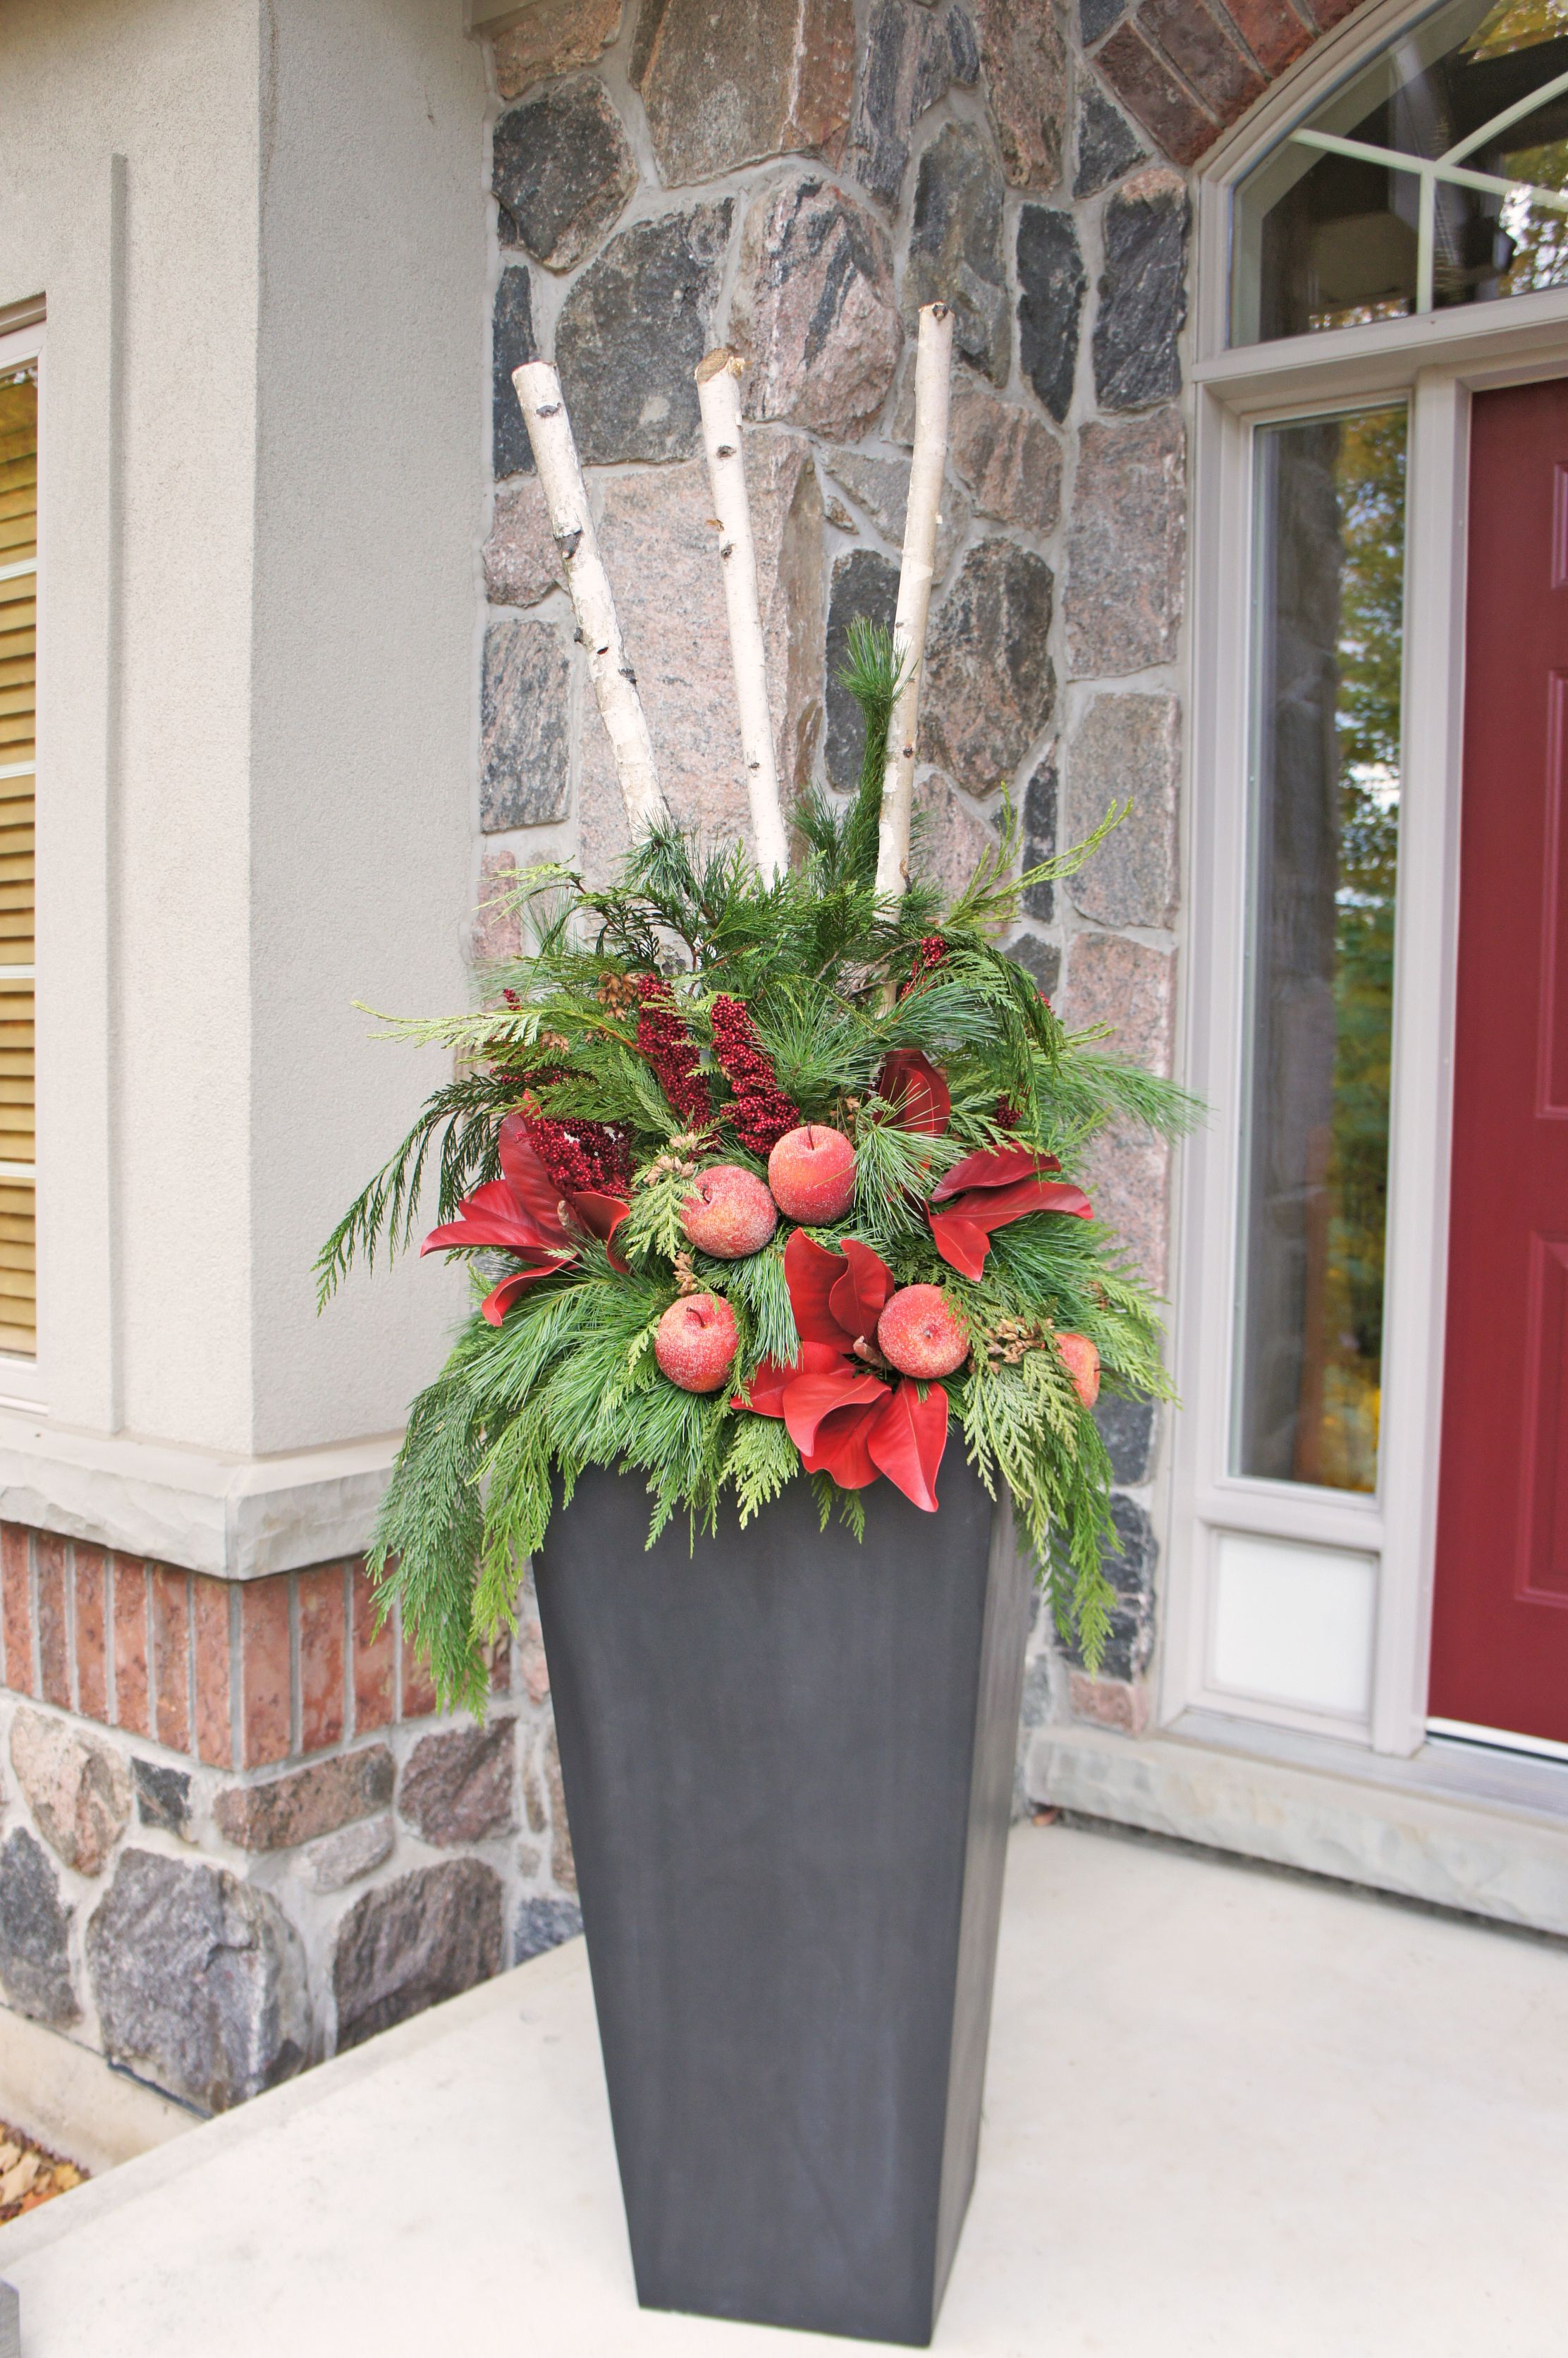 Outdoor Christmas Planter Perfect For Zinc Planters.